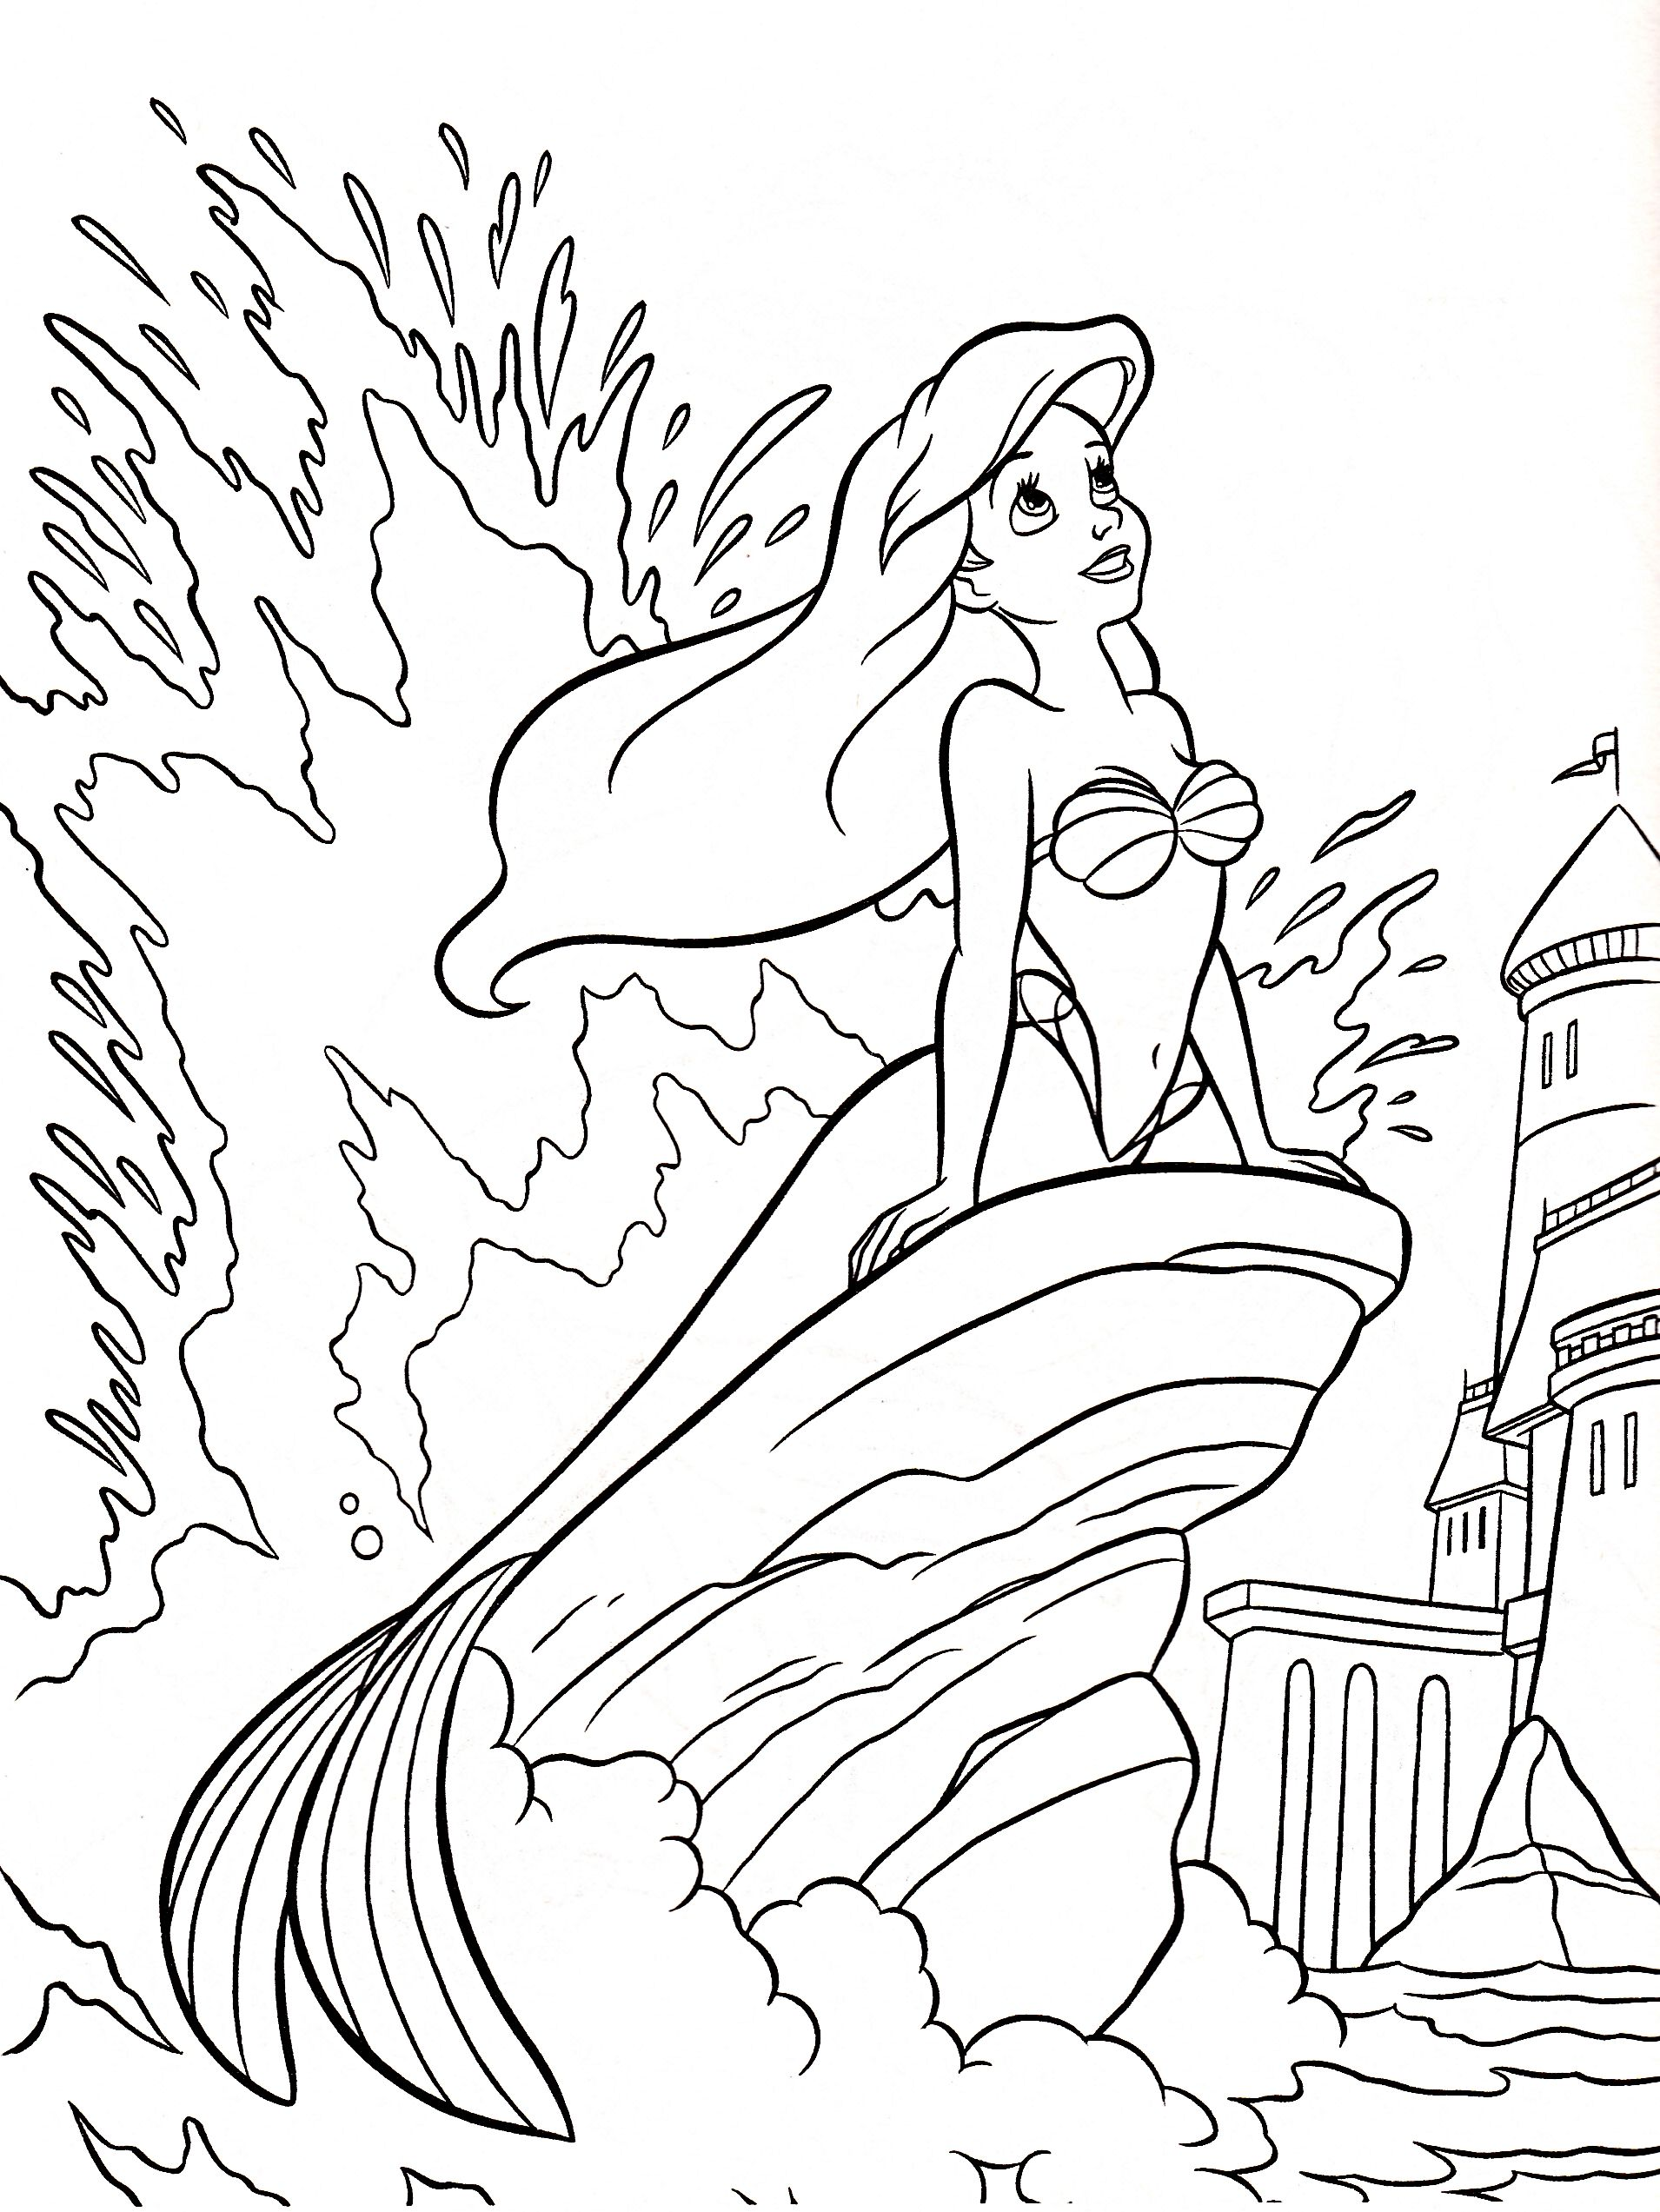 Disney+Frozen+Coloring+Pages | Walt Disney Characters Walt Disney ...